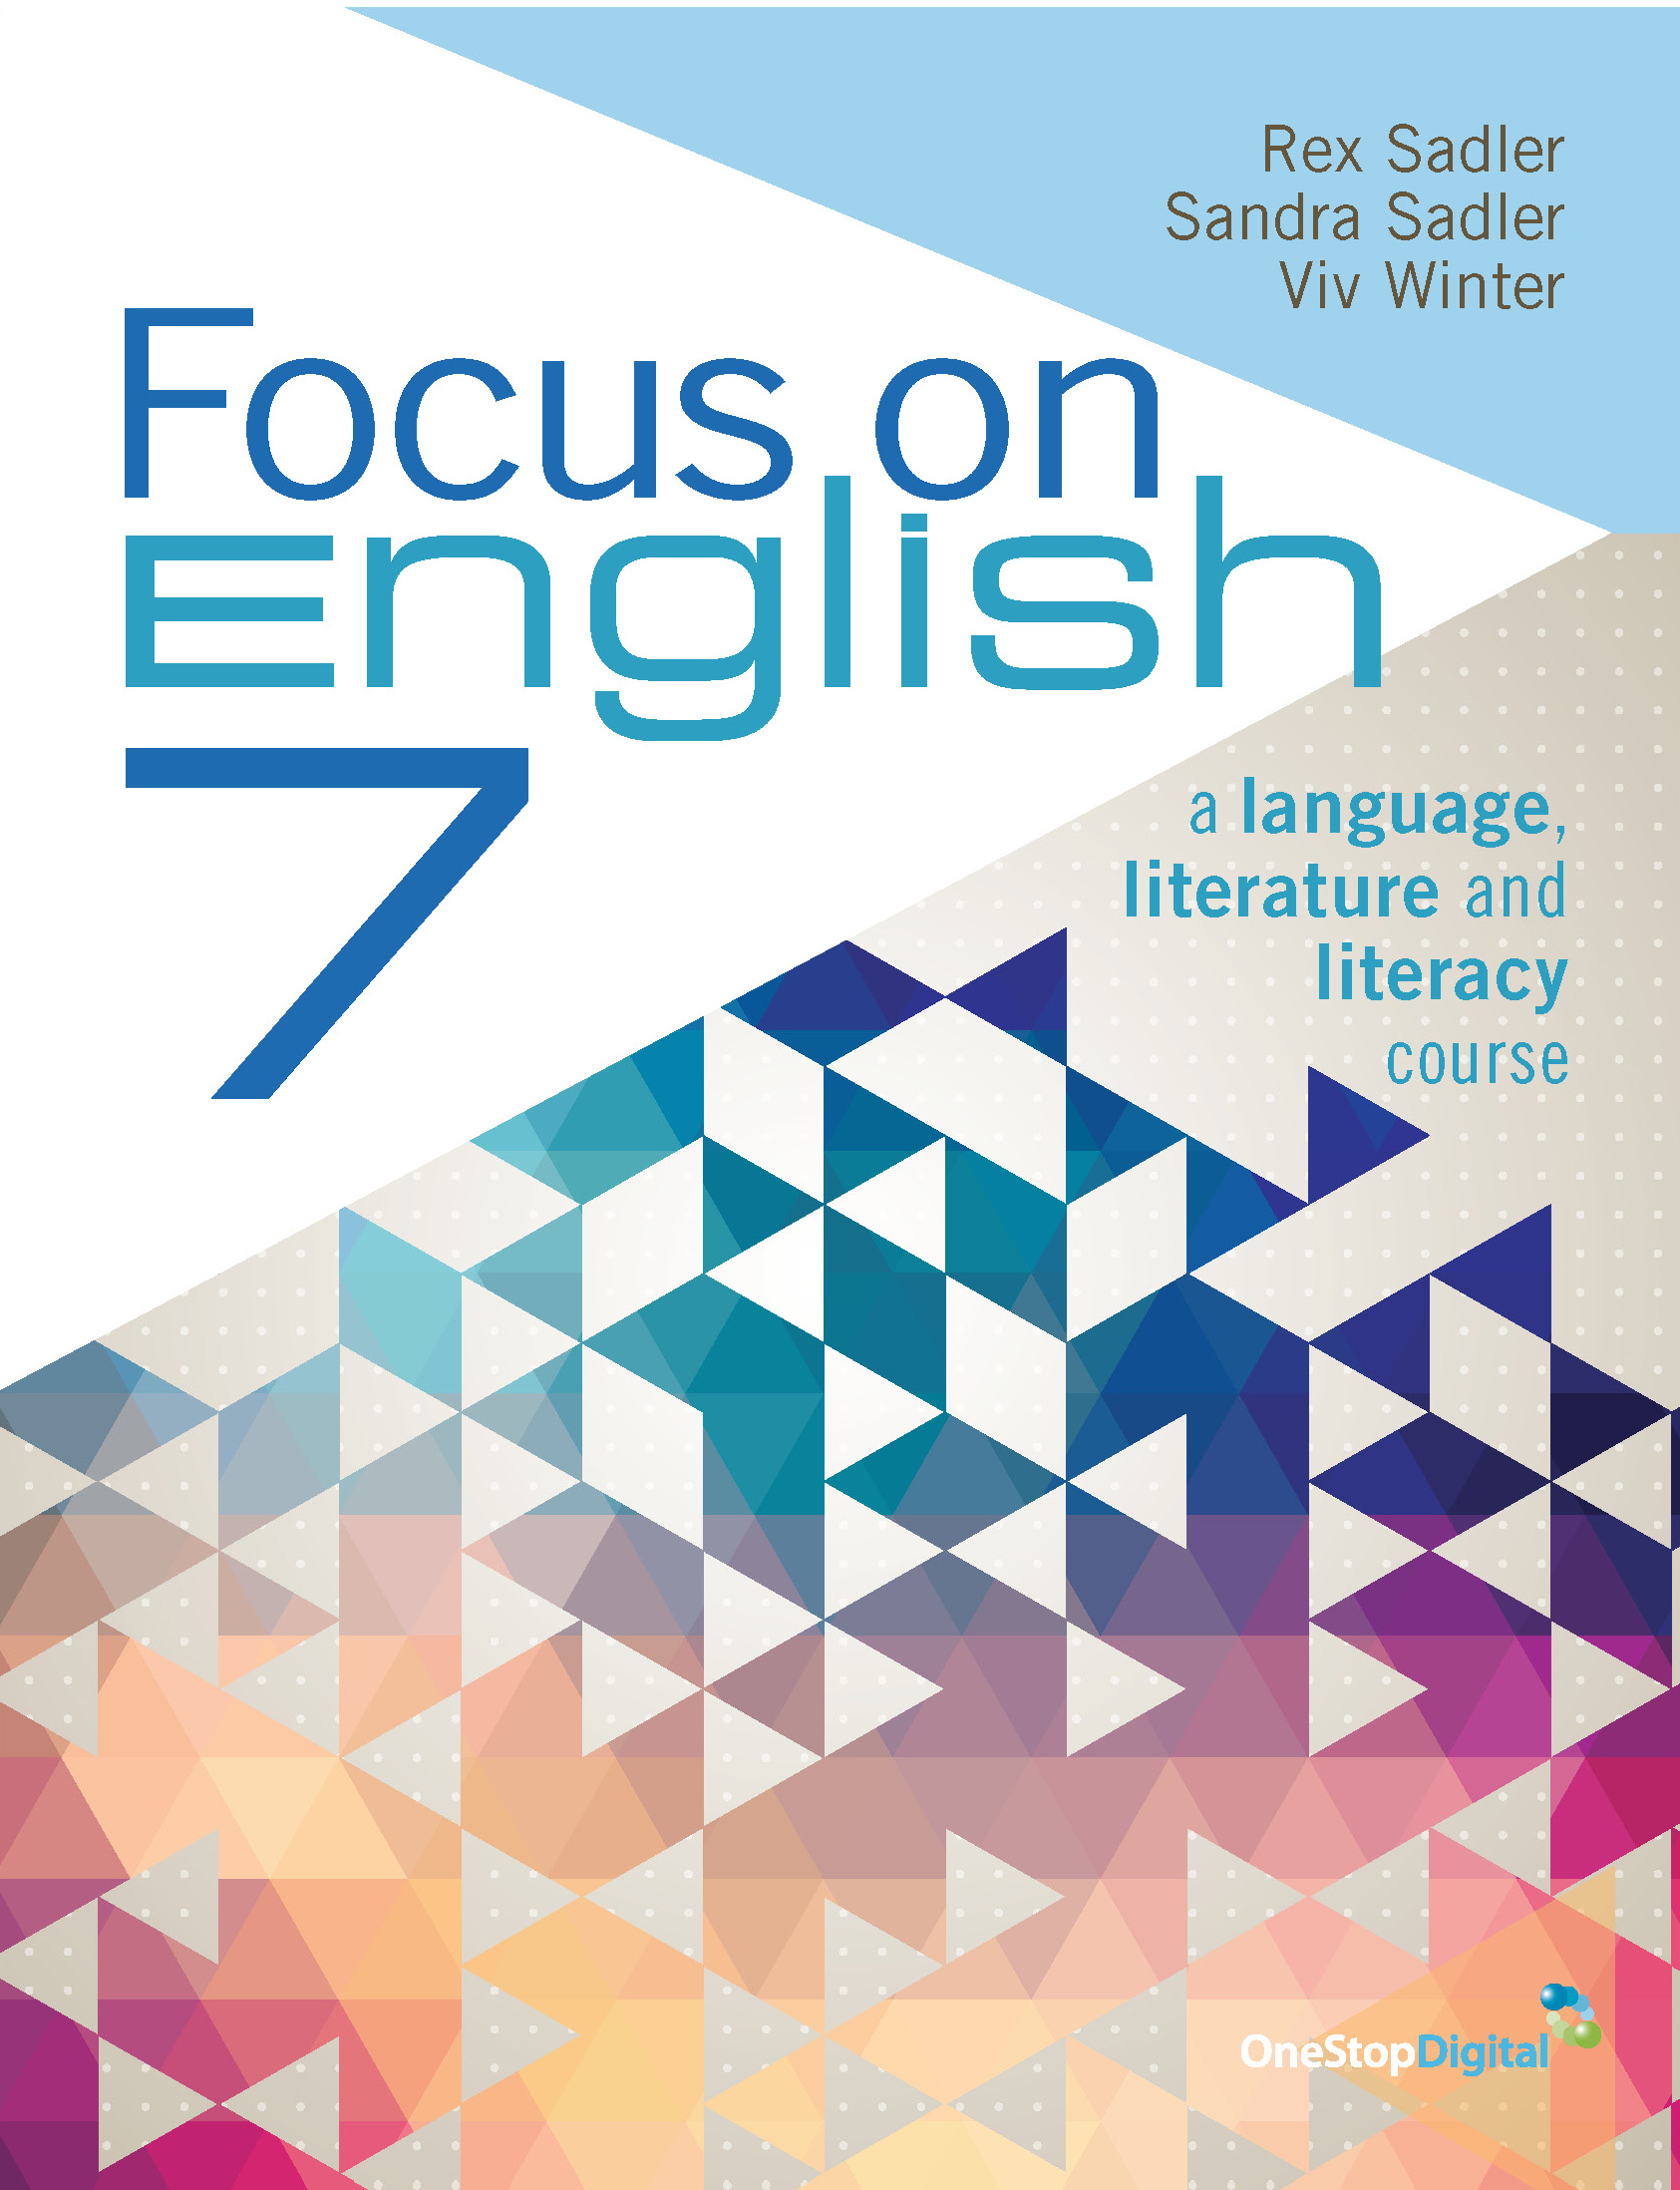 Focus on English 7 - Student Book by Viv Winter,Rex K. Sadler, ISBN: 9781458650412